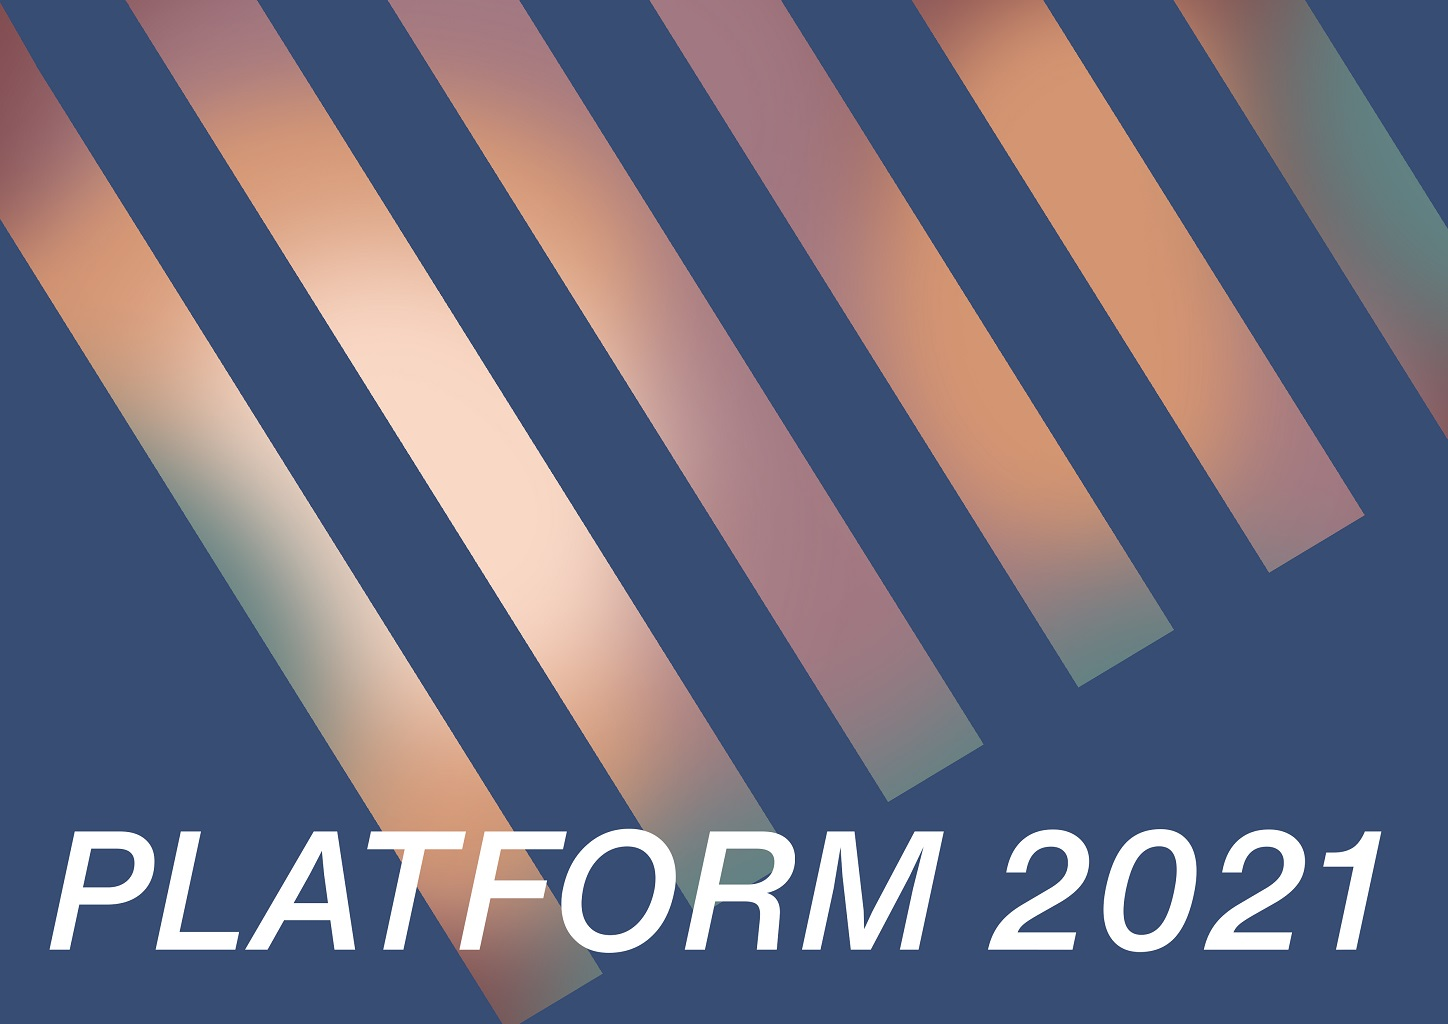 PLATFORM 2021 - Worlds of Their Own | Group Show at Draiocht Blanchardstown